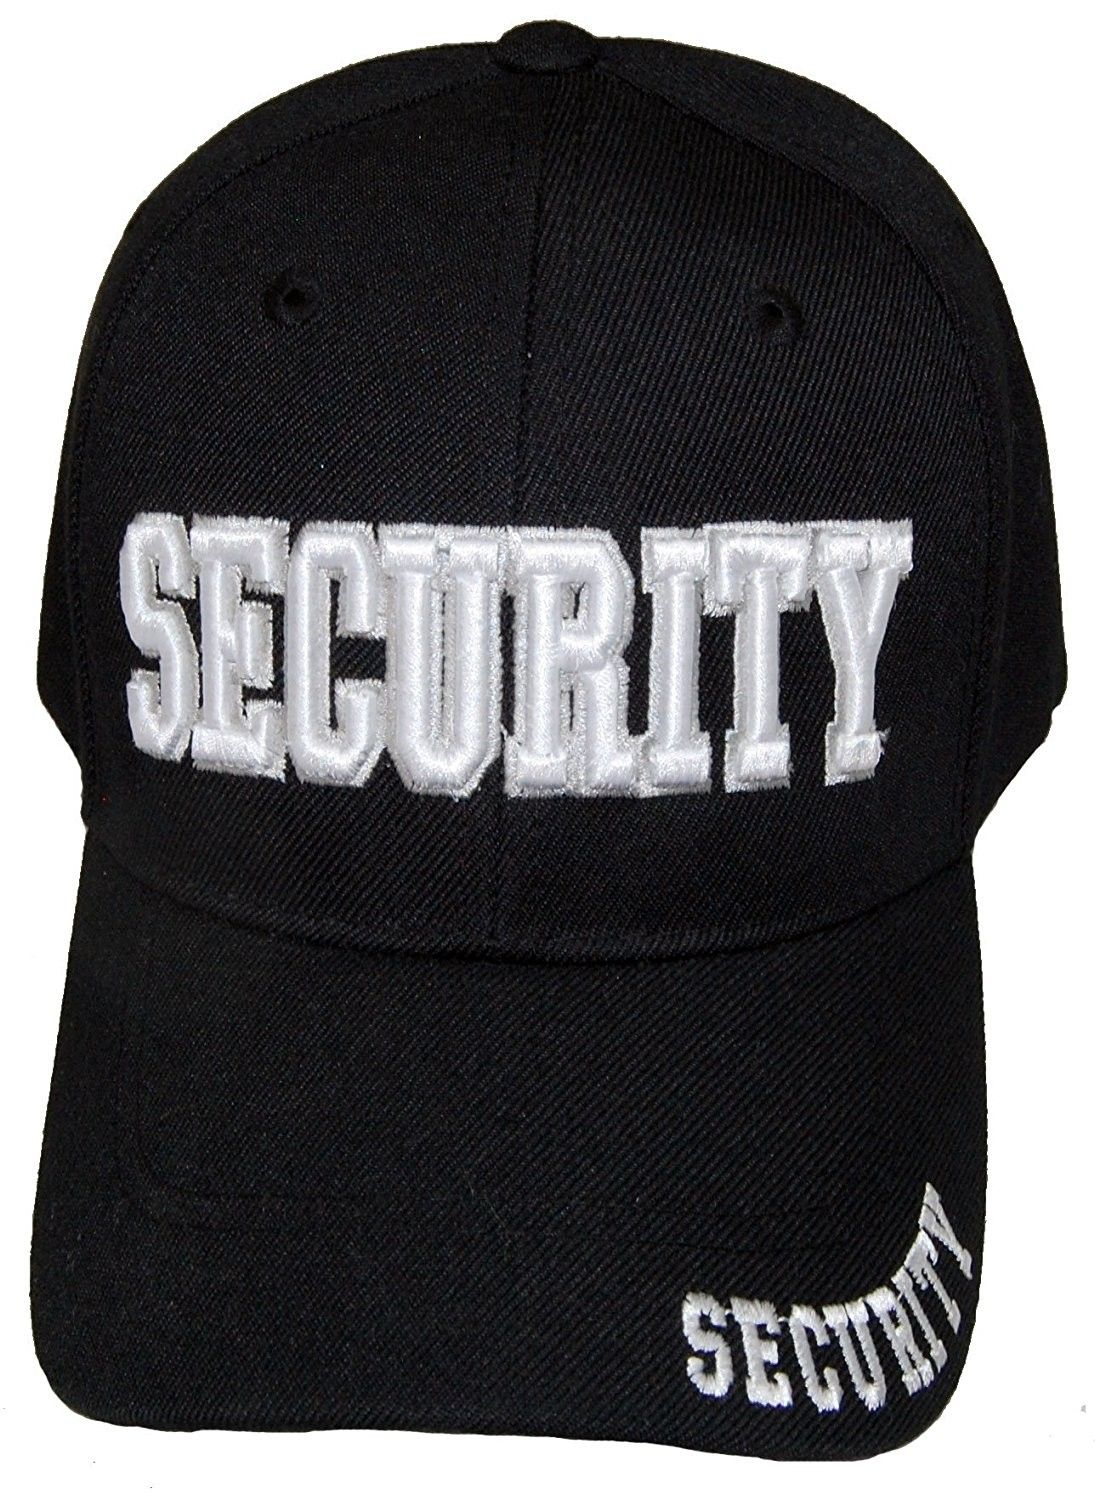 SECURITY GUARD OFFICER CAP EMBROIDERED BASEBALL CAP - C3187G0ZXWI - Hats    Caps b26819311bb